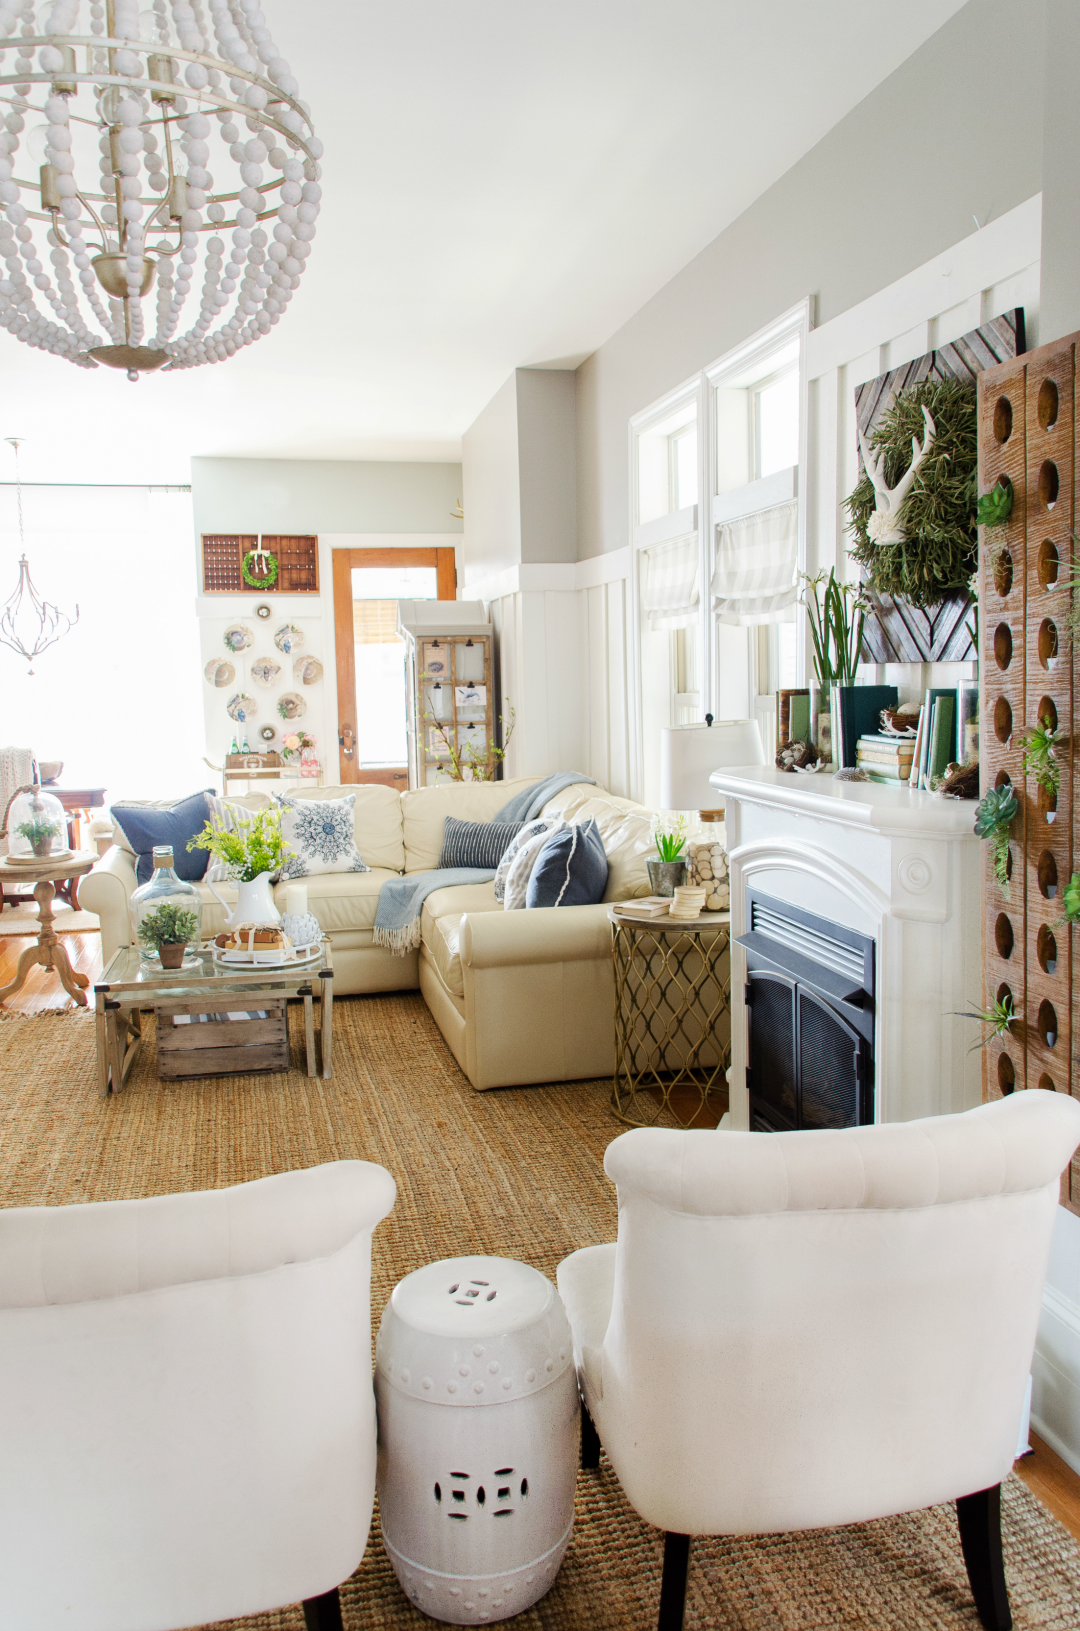 4 tips for refreshing your living room for spring with birch lane home stories a to z. Black Bedroom Furniture Sets. Home Design Ideas